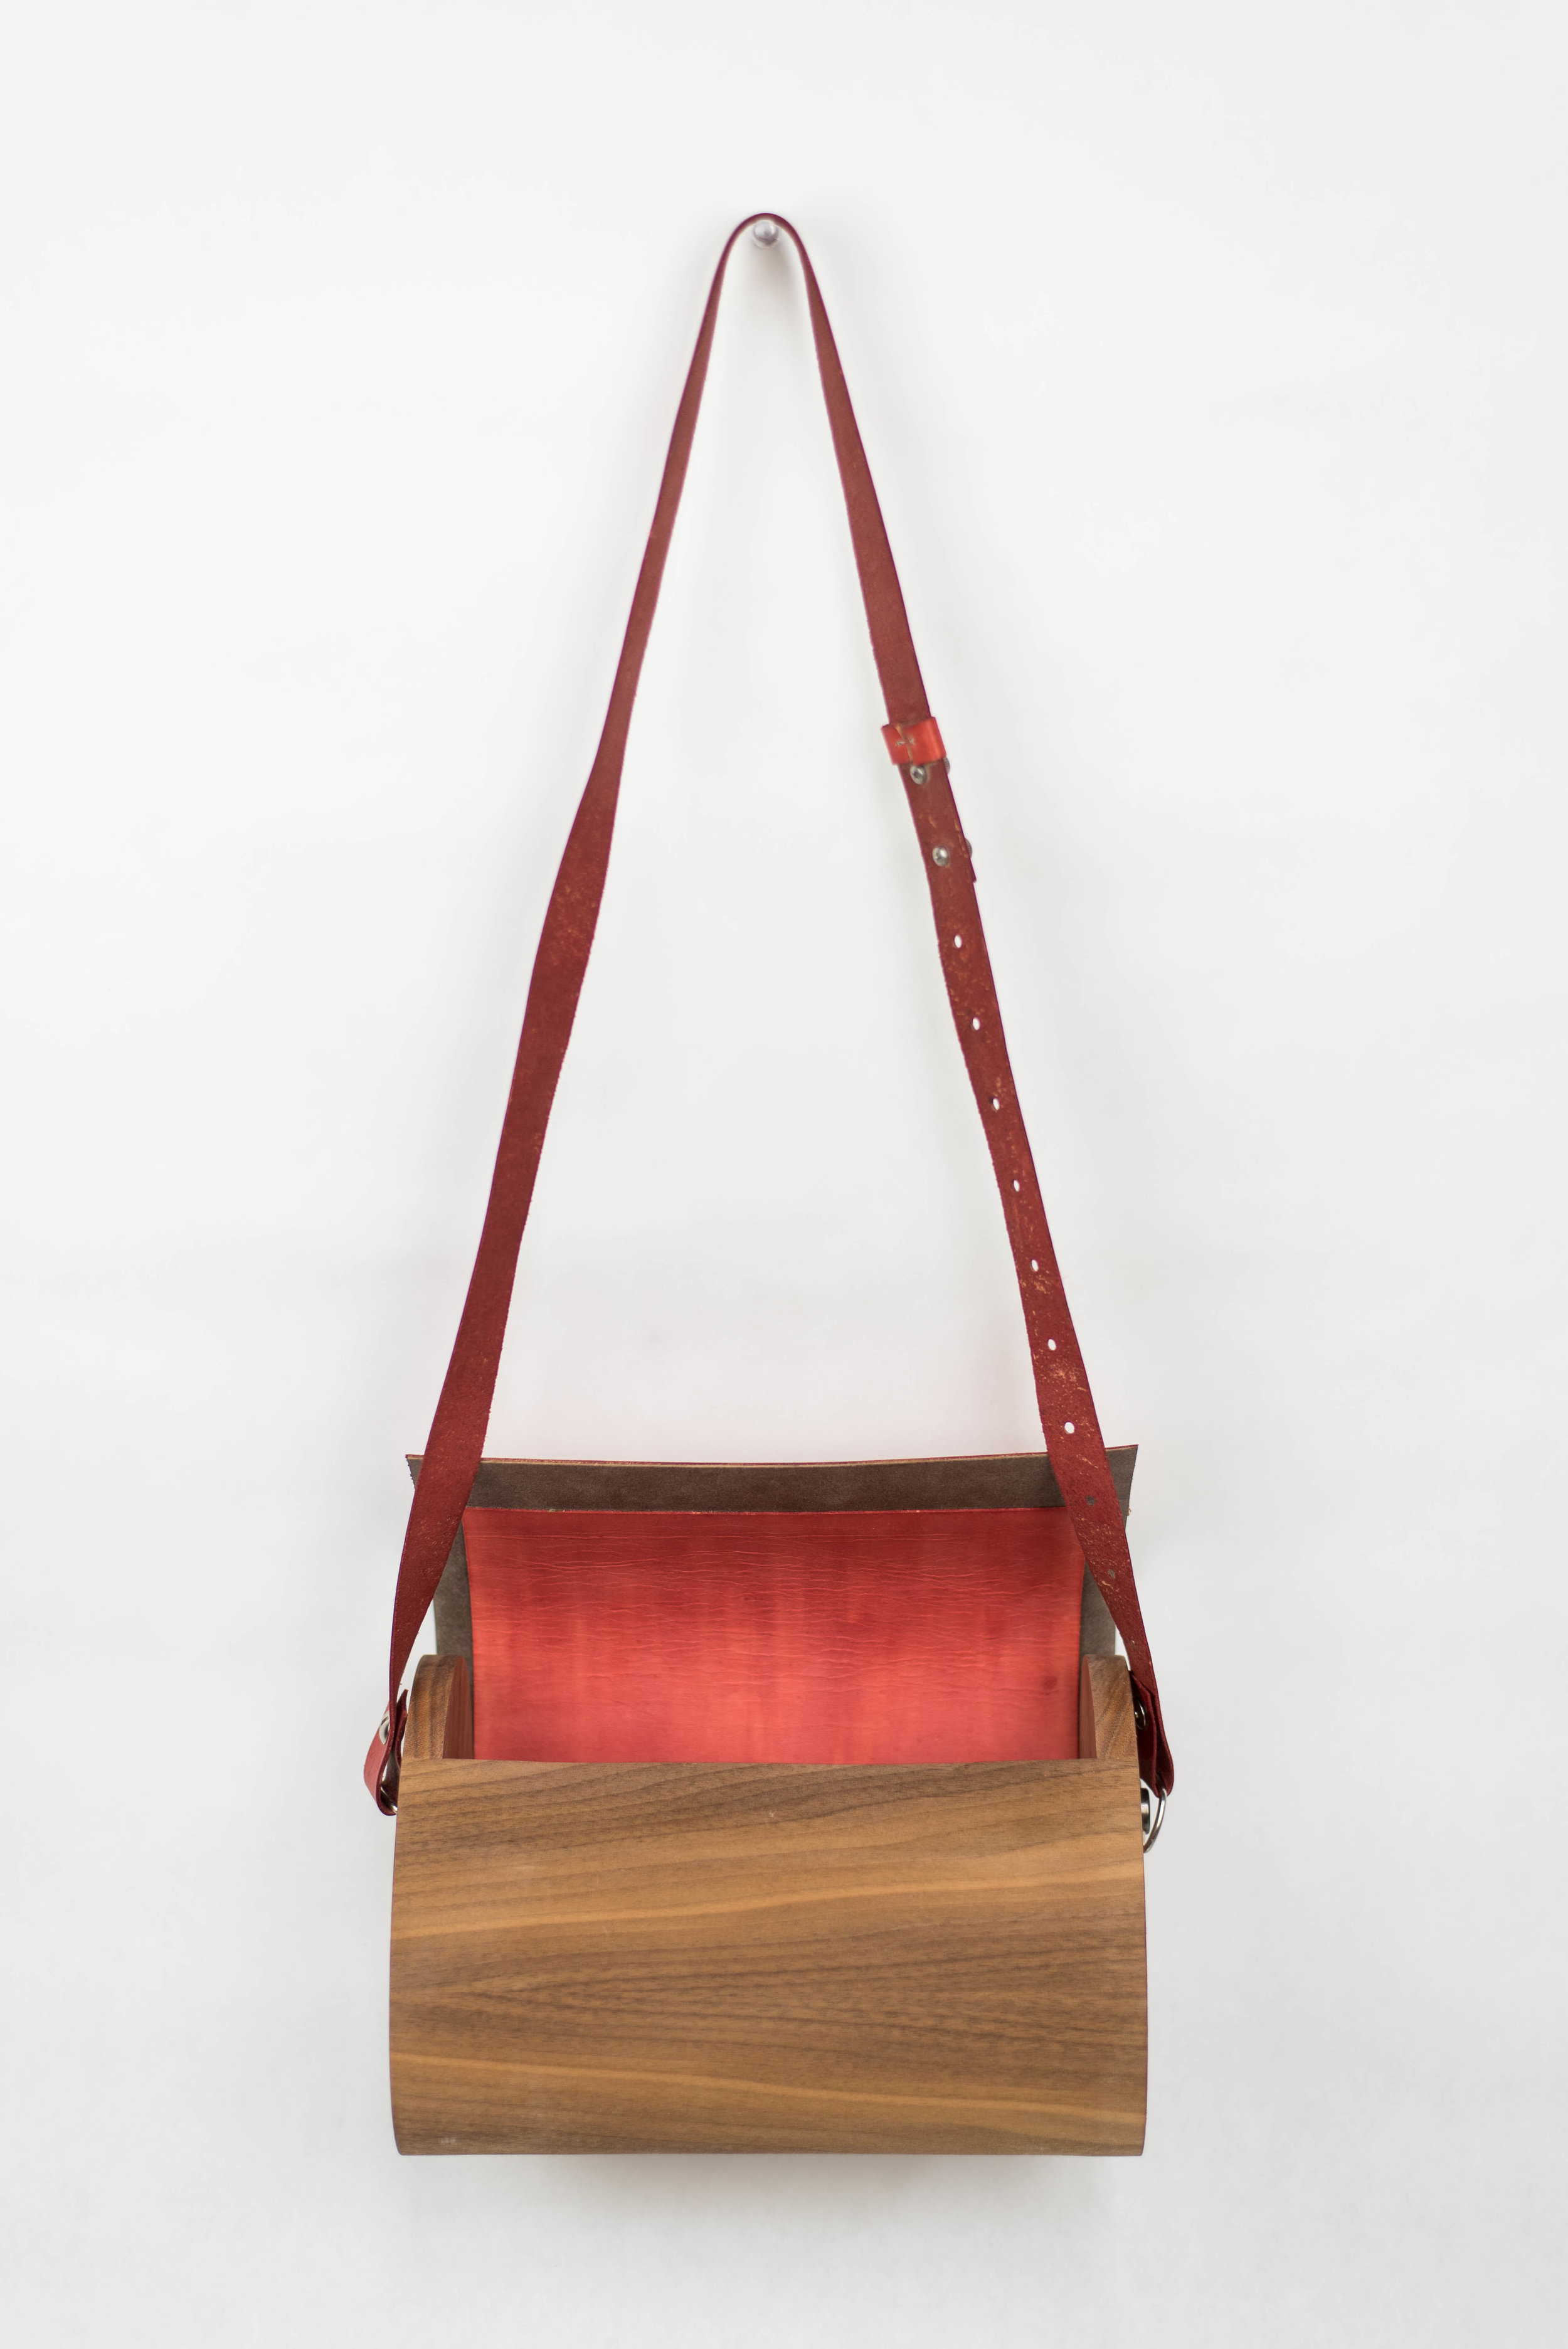 Walnut with Red Leather